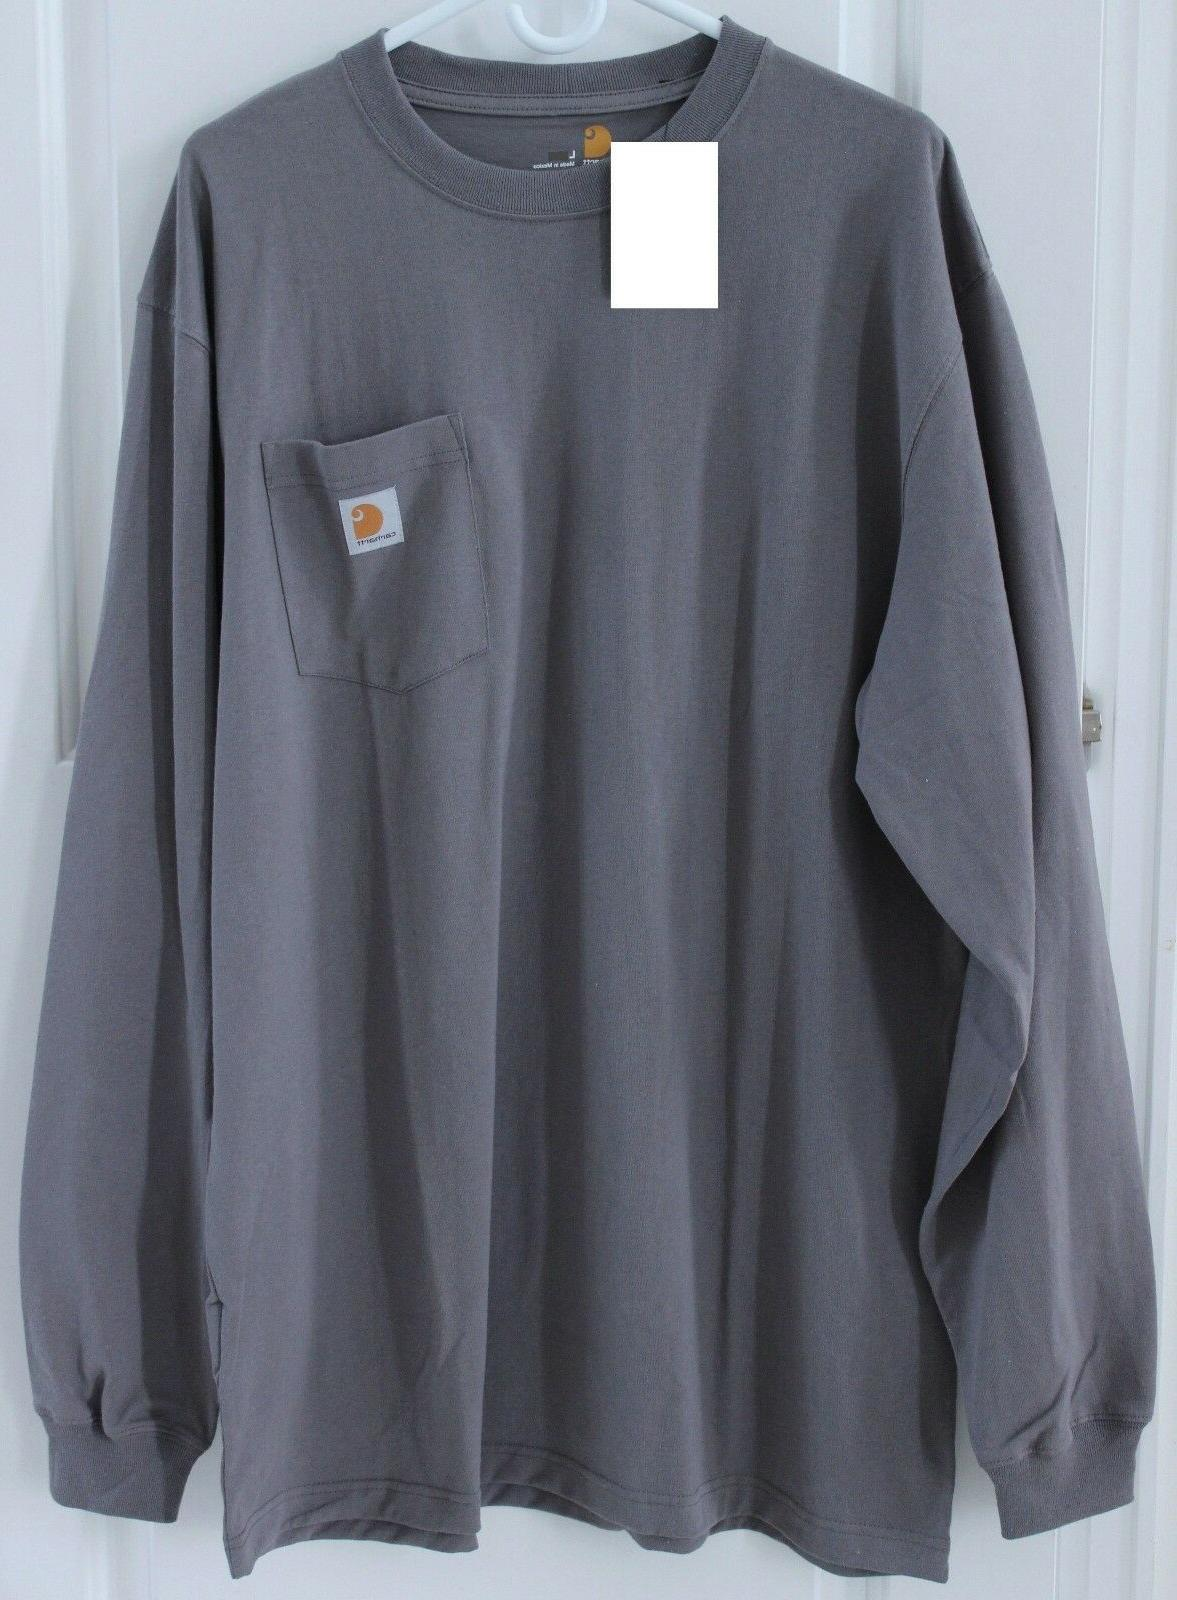 CARHARTT Men's Long Sleeve Pocket T-shirt K126 Gray ~Charcoa